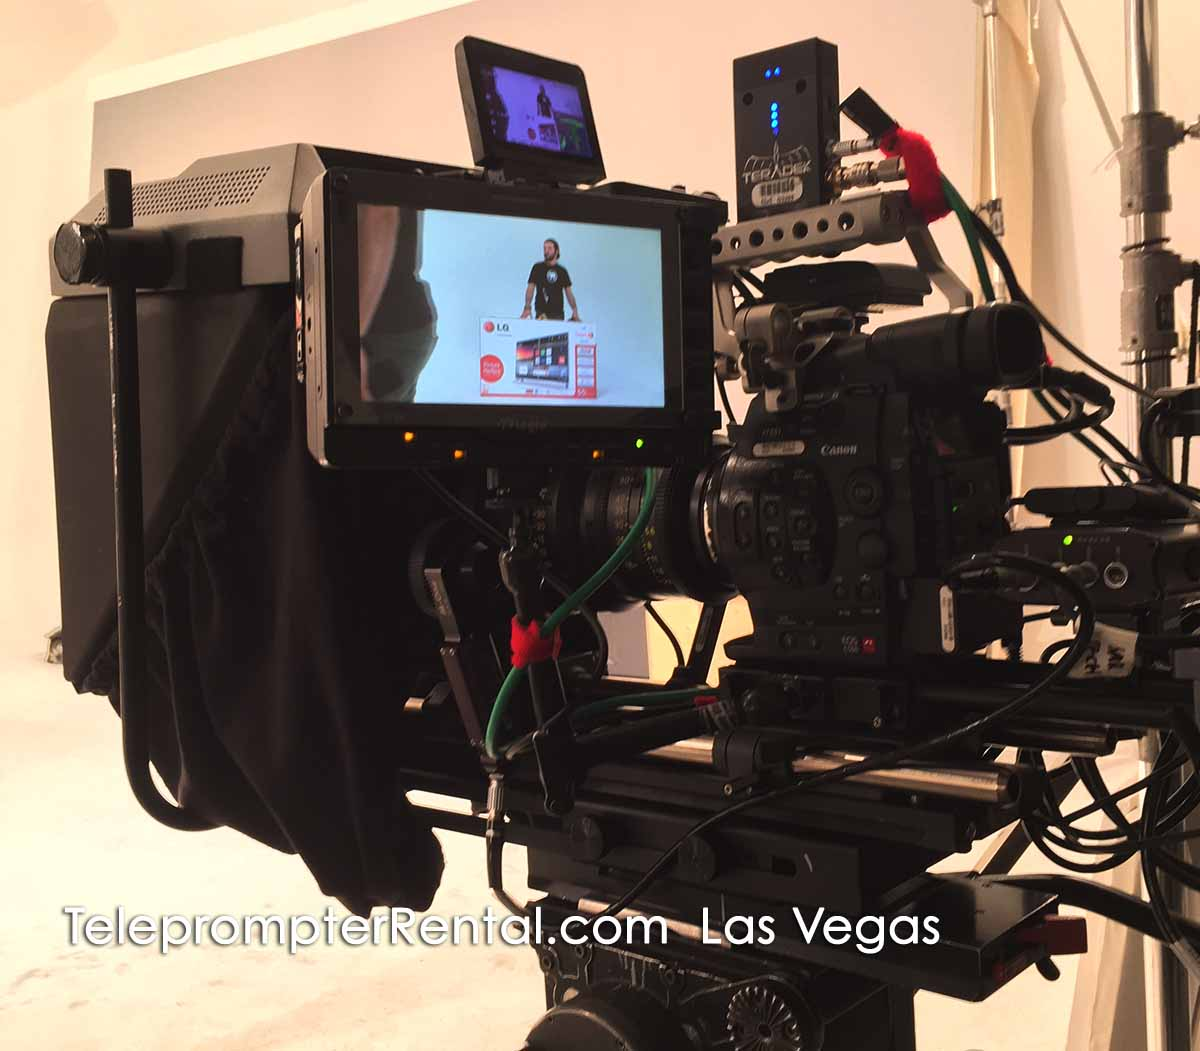 TeleprompterRental.com Las Vegas unit setup